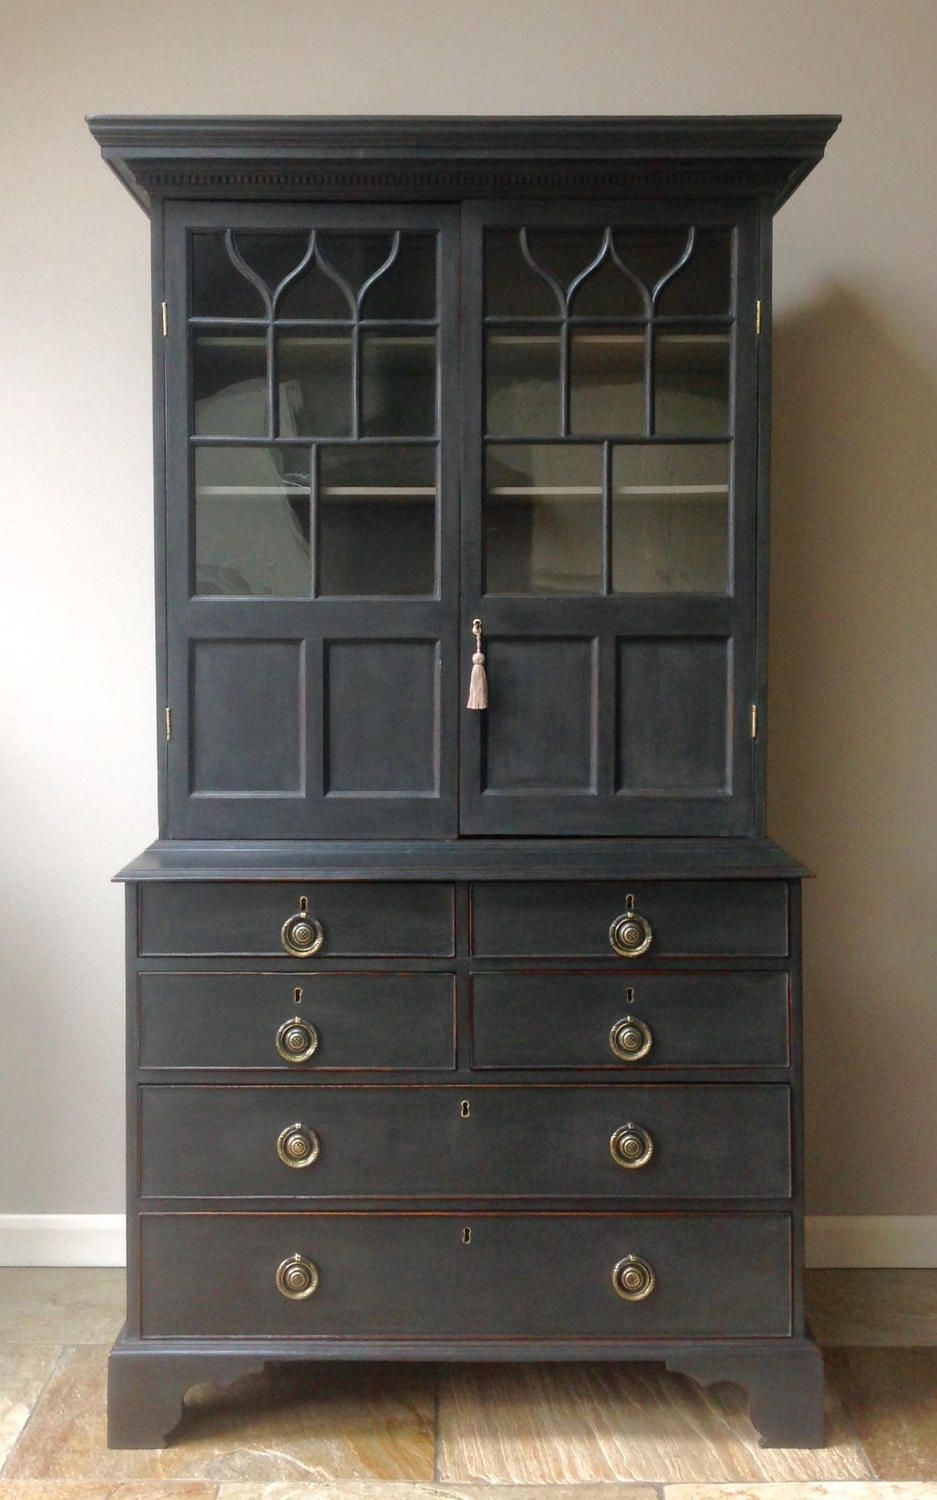 Antique Edwardian 19th Century Astragal Glazed Bookcase Cupboard Welsh Dresser Display Cabinet Handpainted Annie Sloan Black